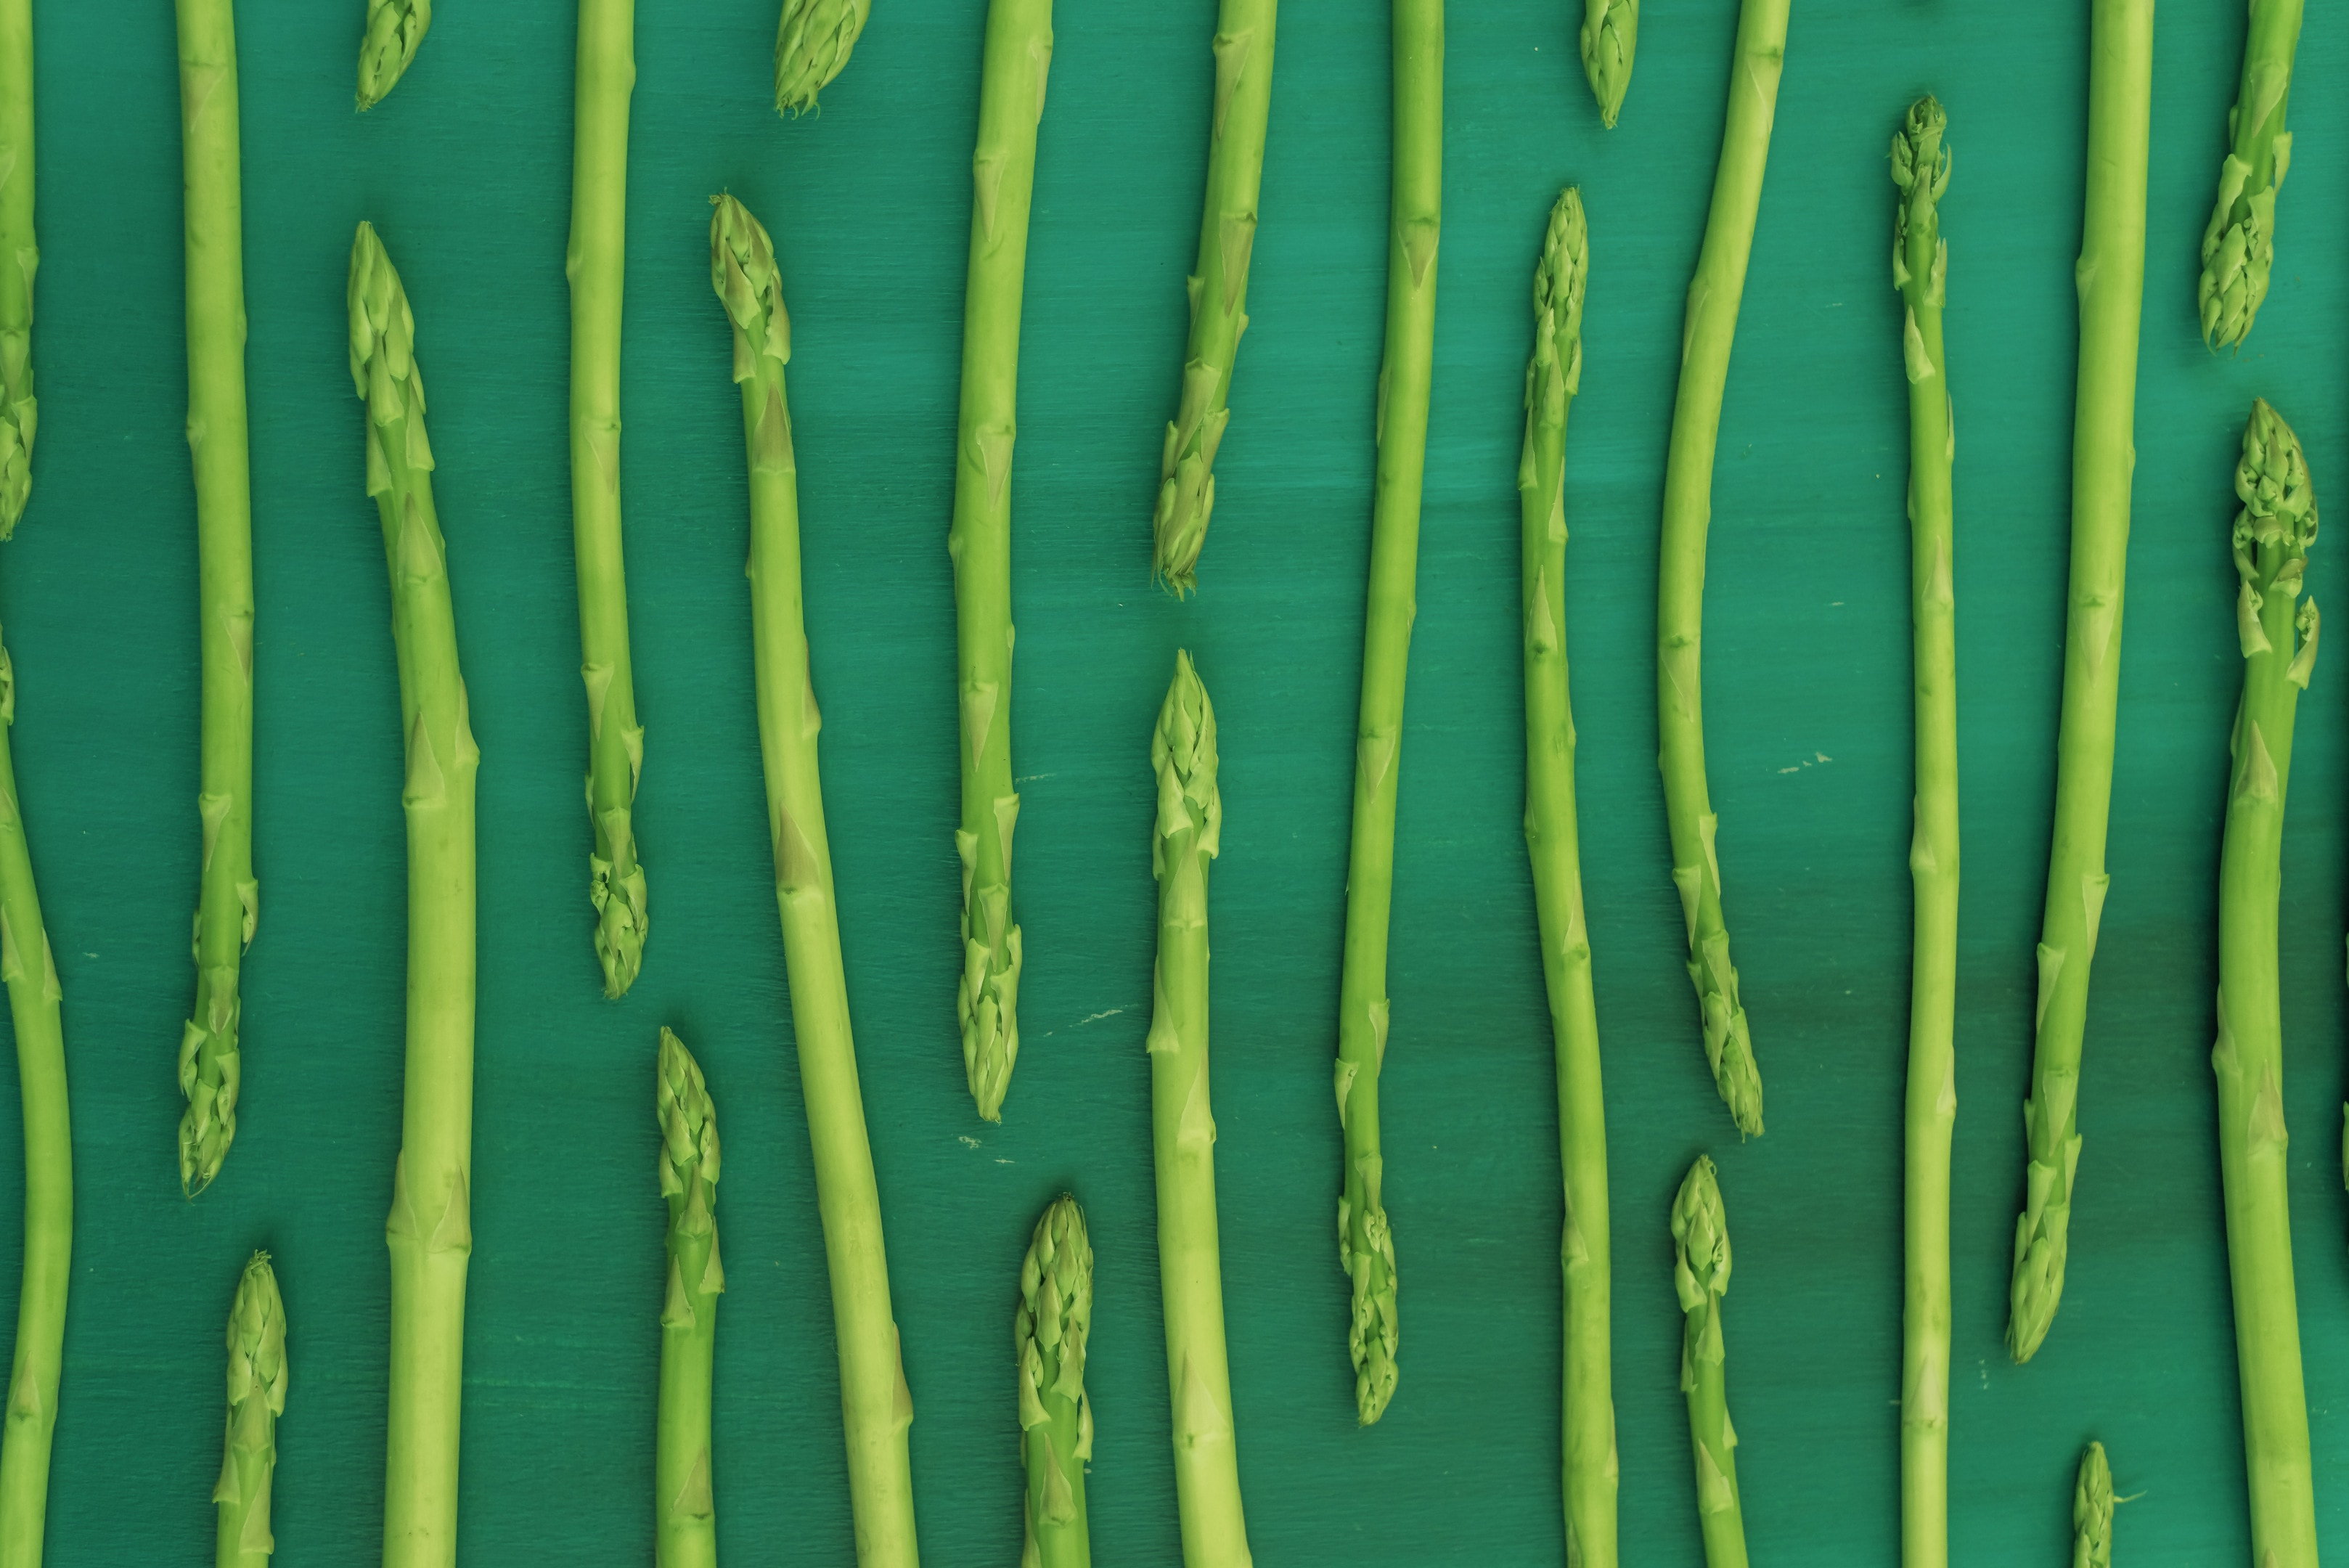 Fresh green asparagus on green background